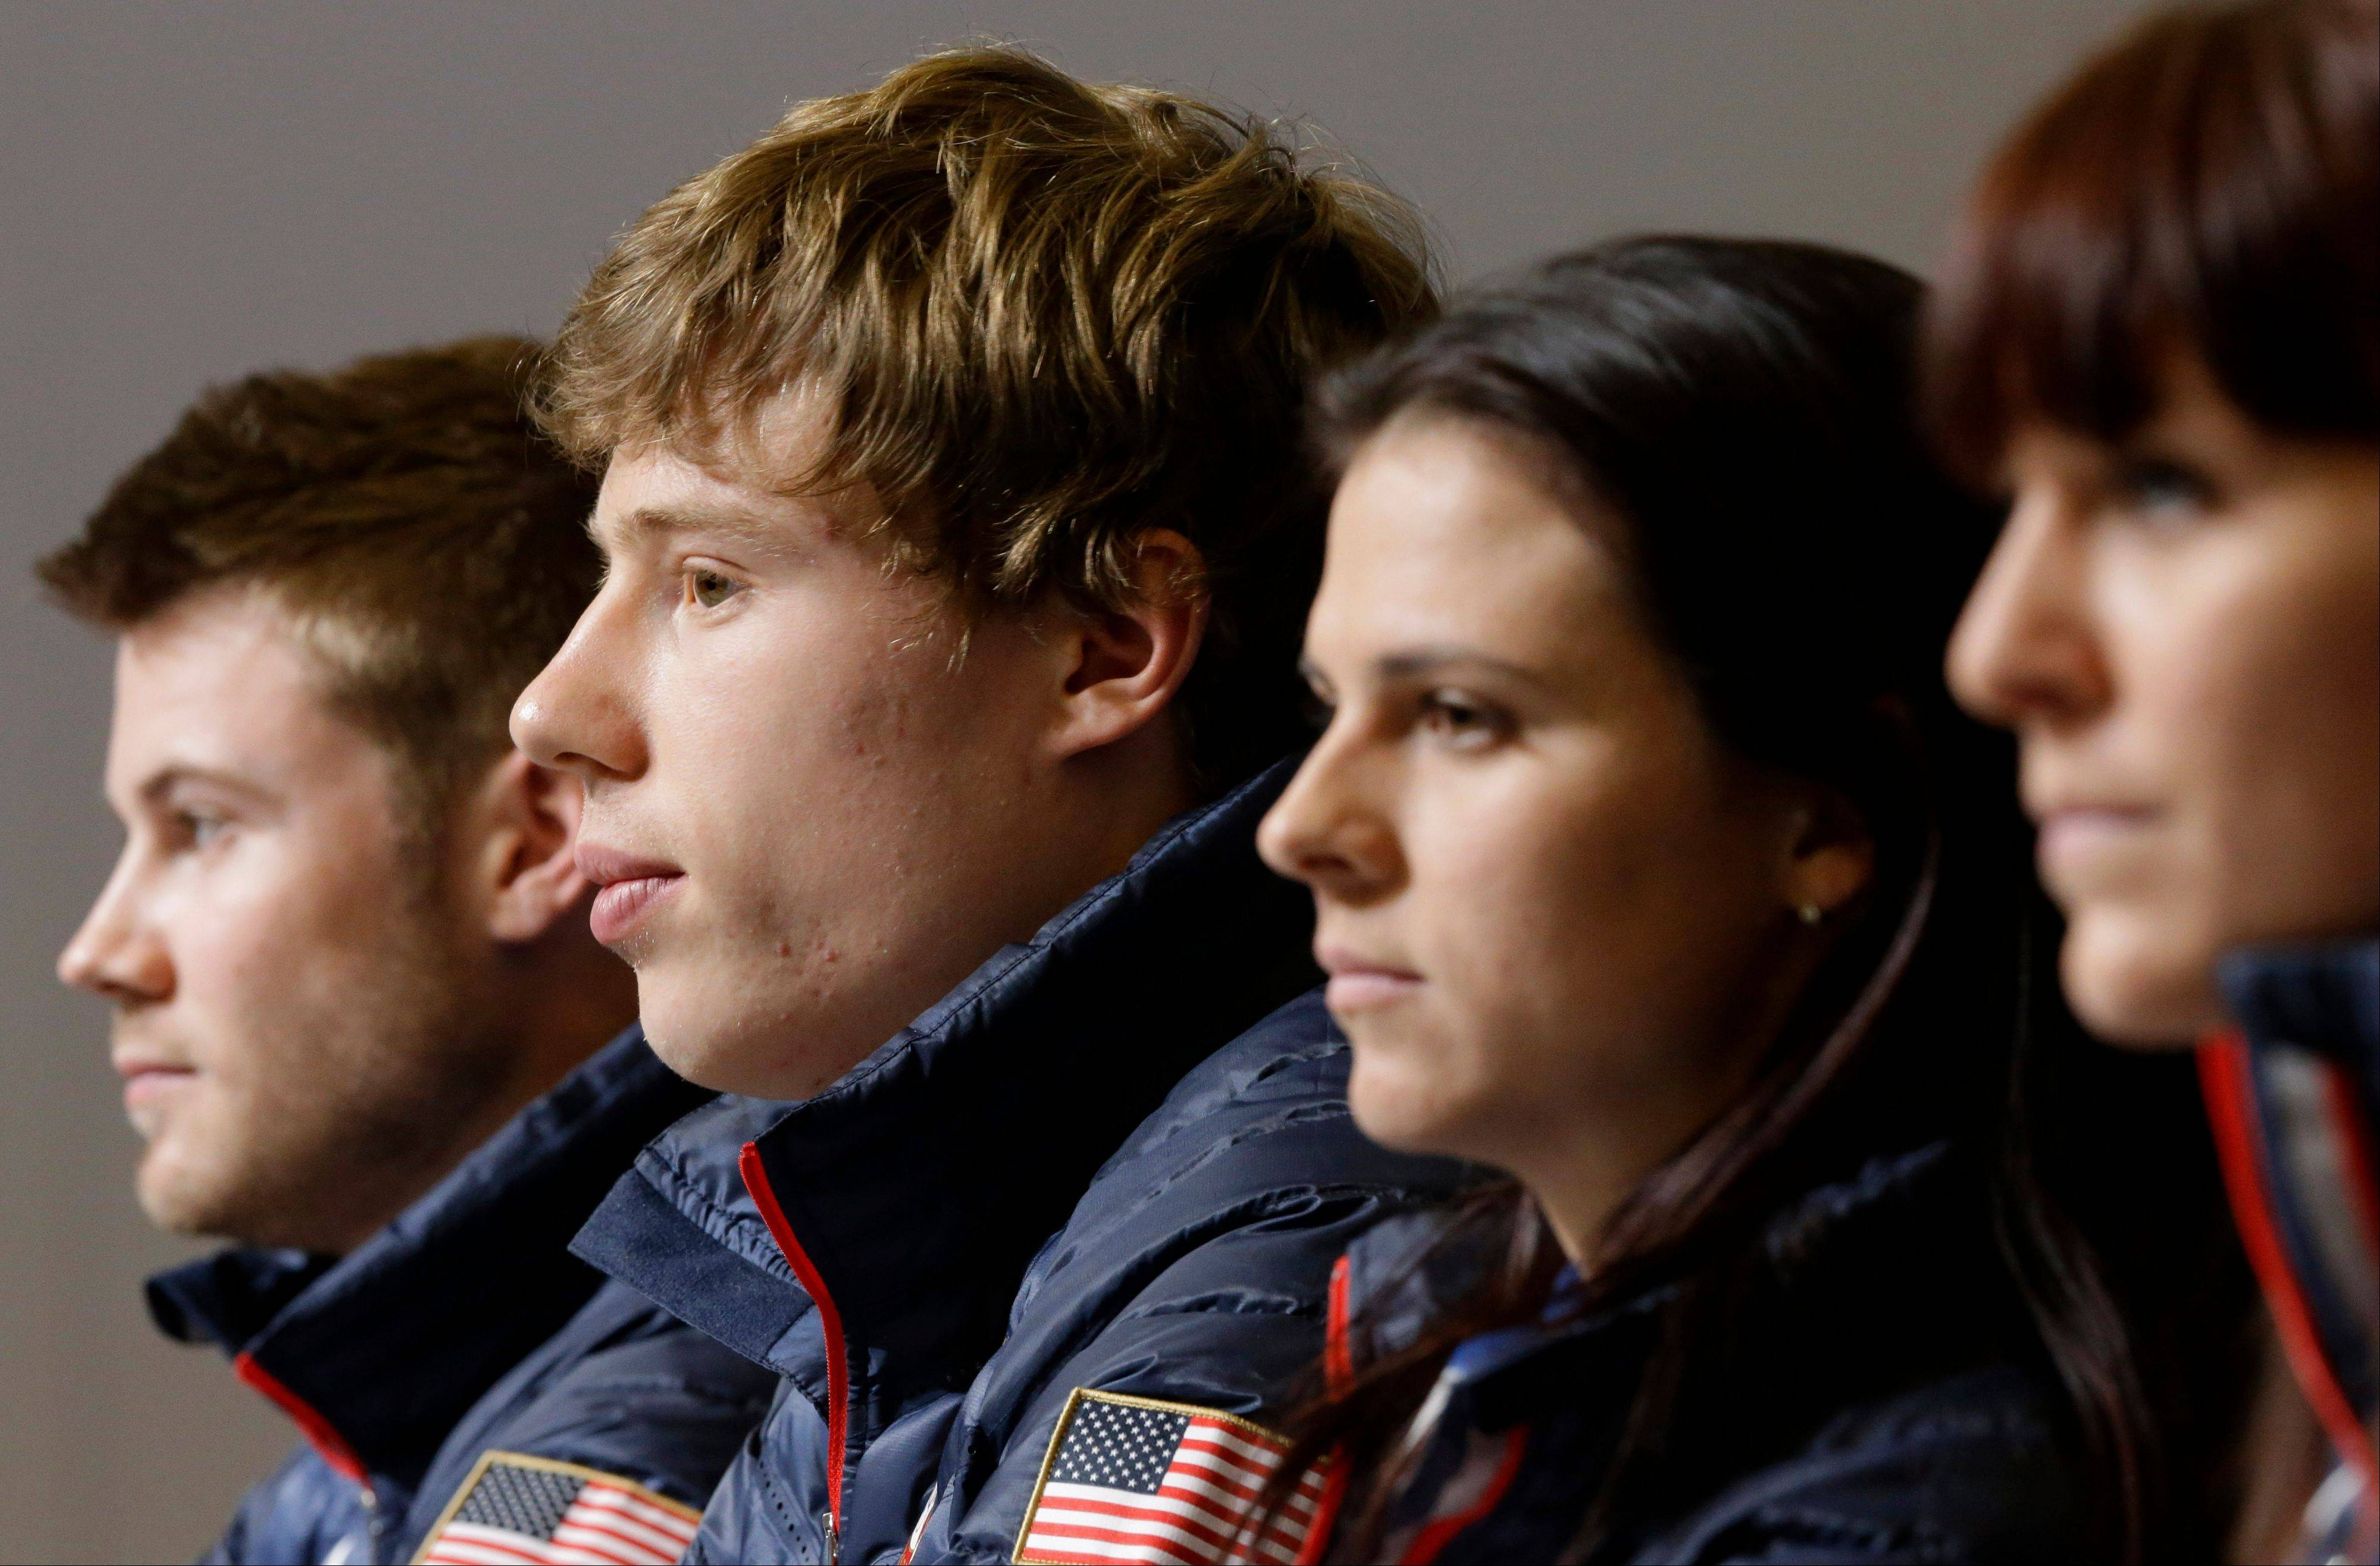 U.S. speedskaters Joey Mantia, from left, Brian Hansen, Brittany Bowe and Heather Richardson listen to a reporter's question during a 2014 Winter Olympics news conference, in Sochi, Russia.